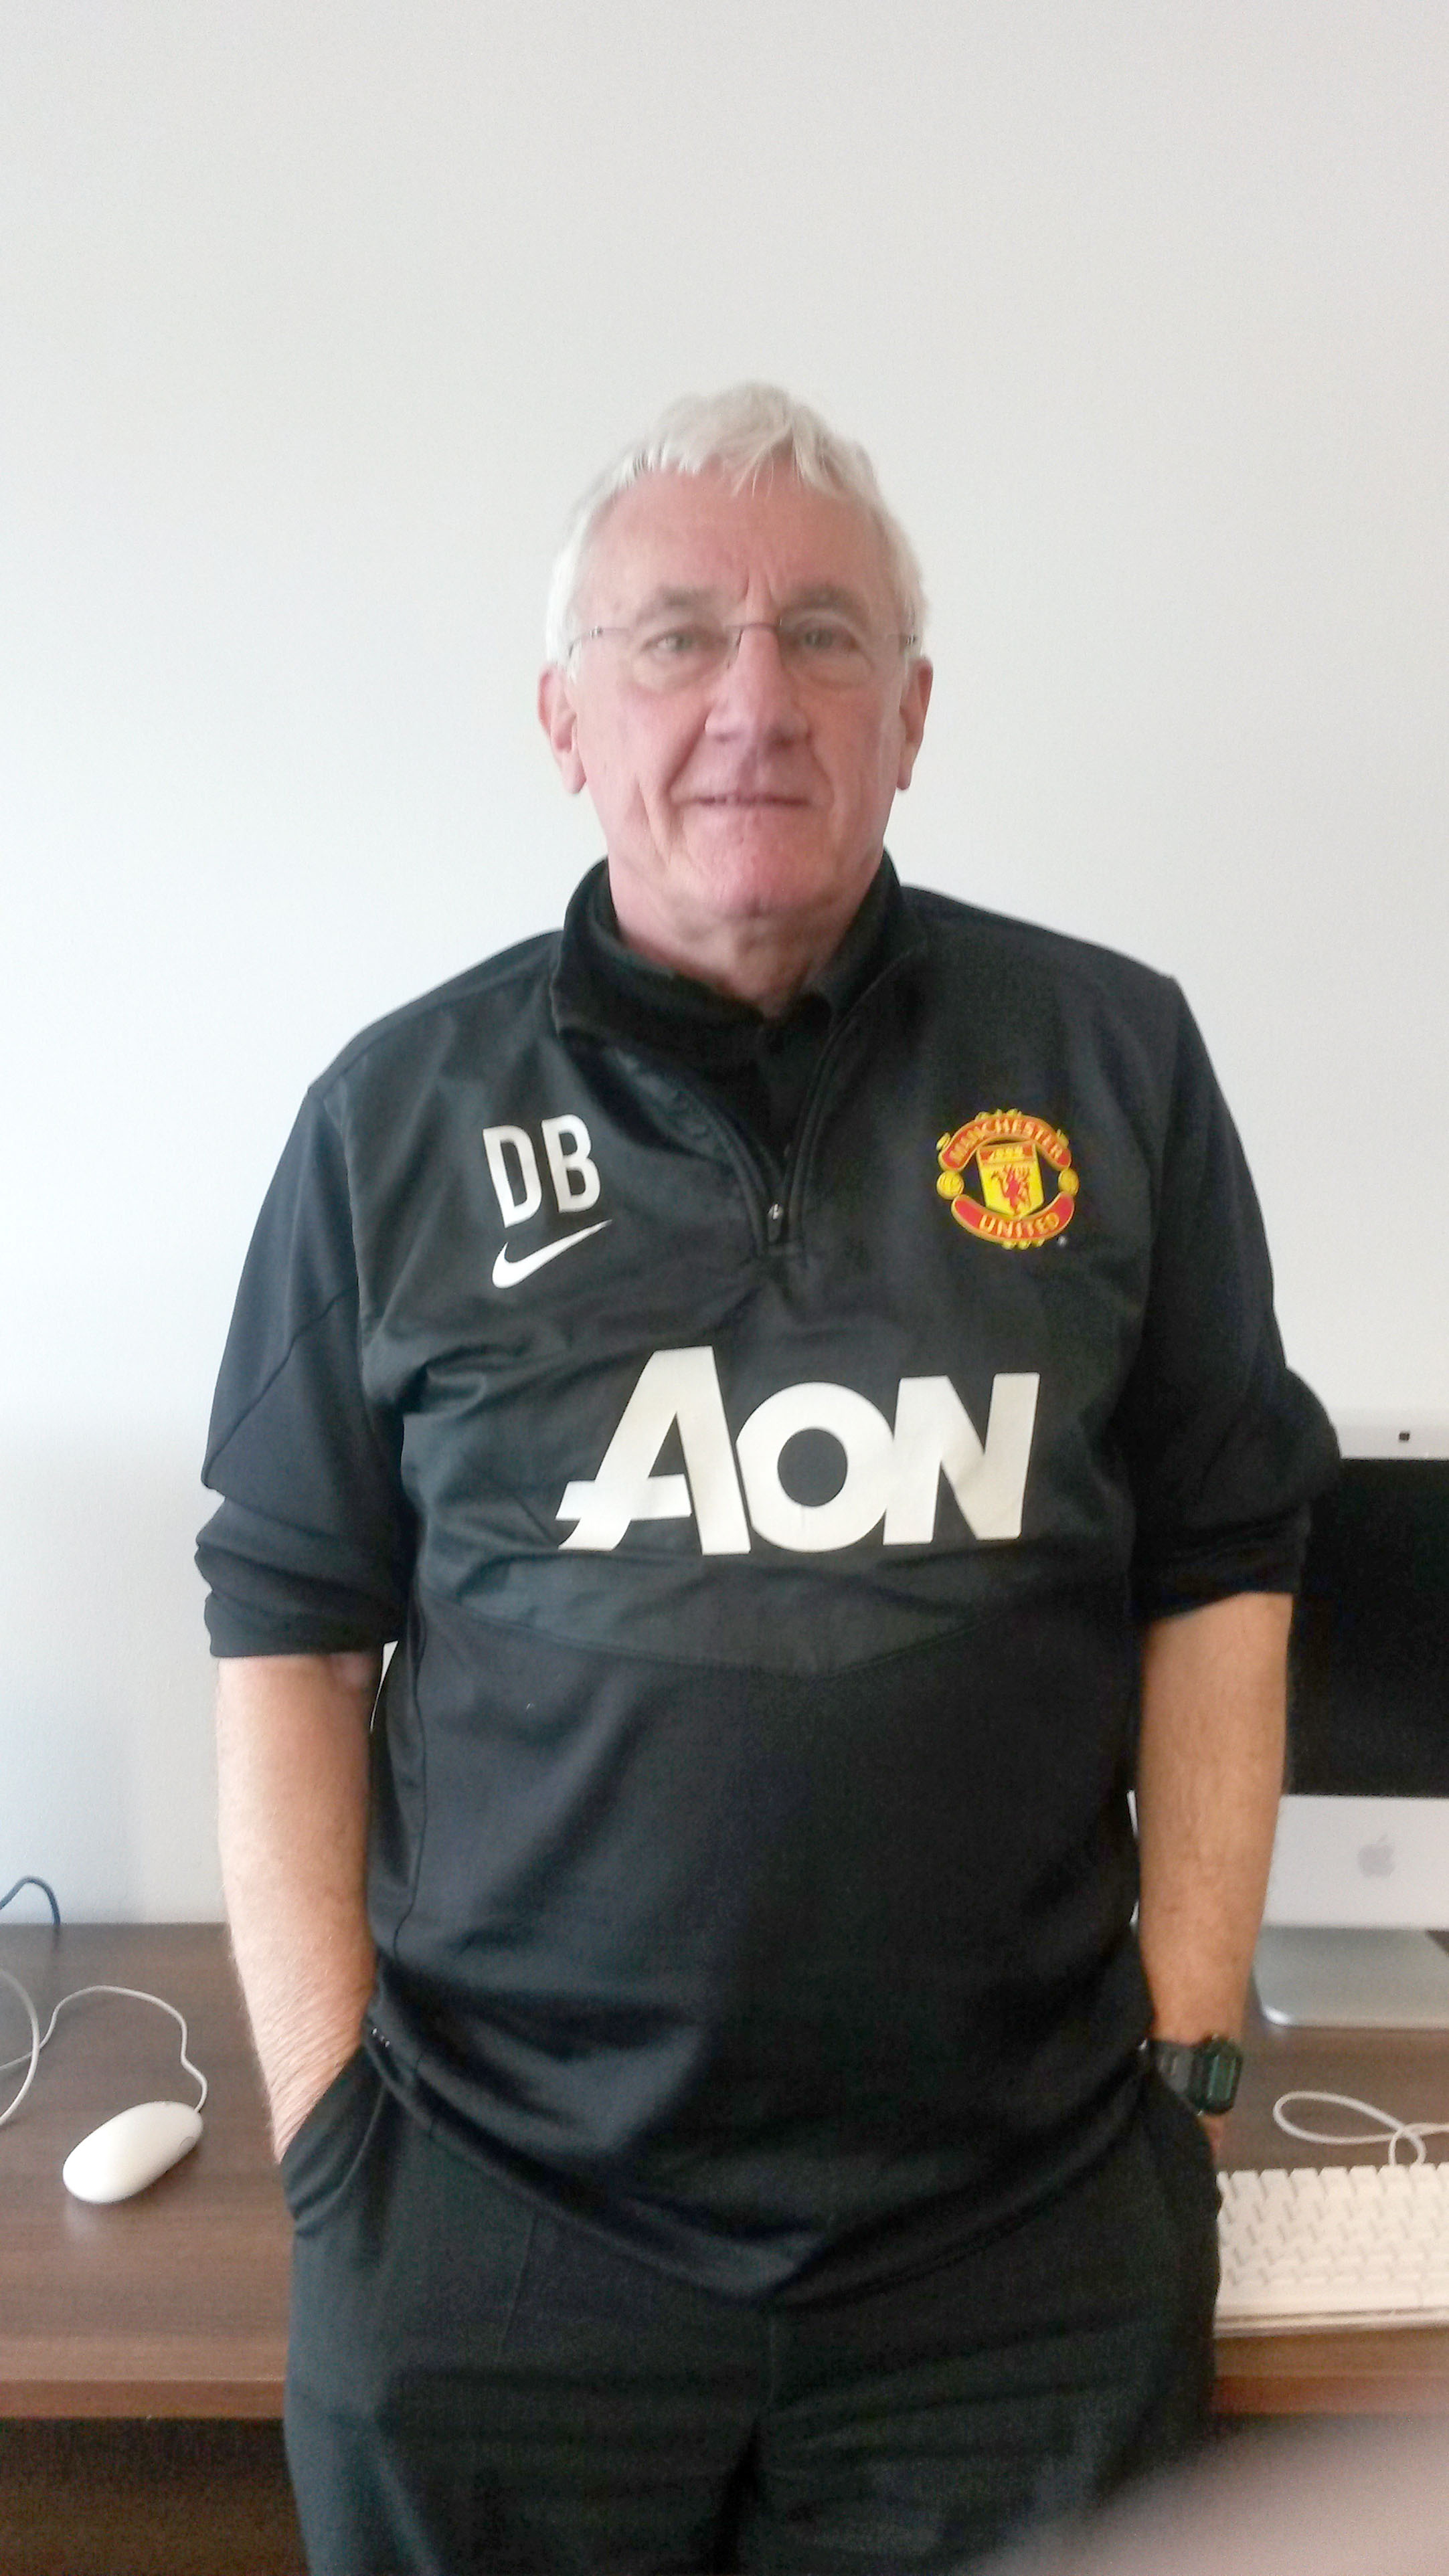 Dave Bushell has made a big impact at Manchester United down the years, but will always be a Wanderers fan